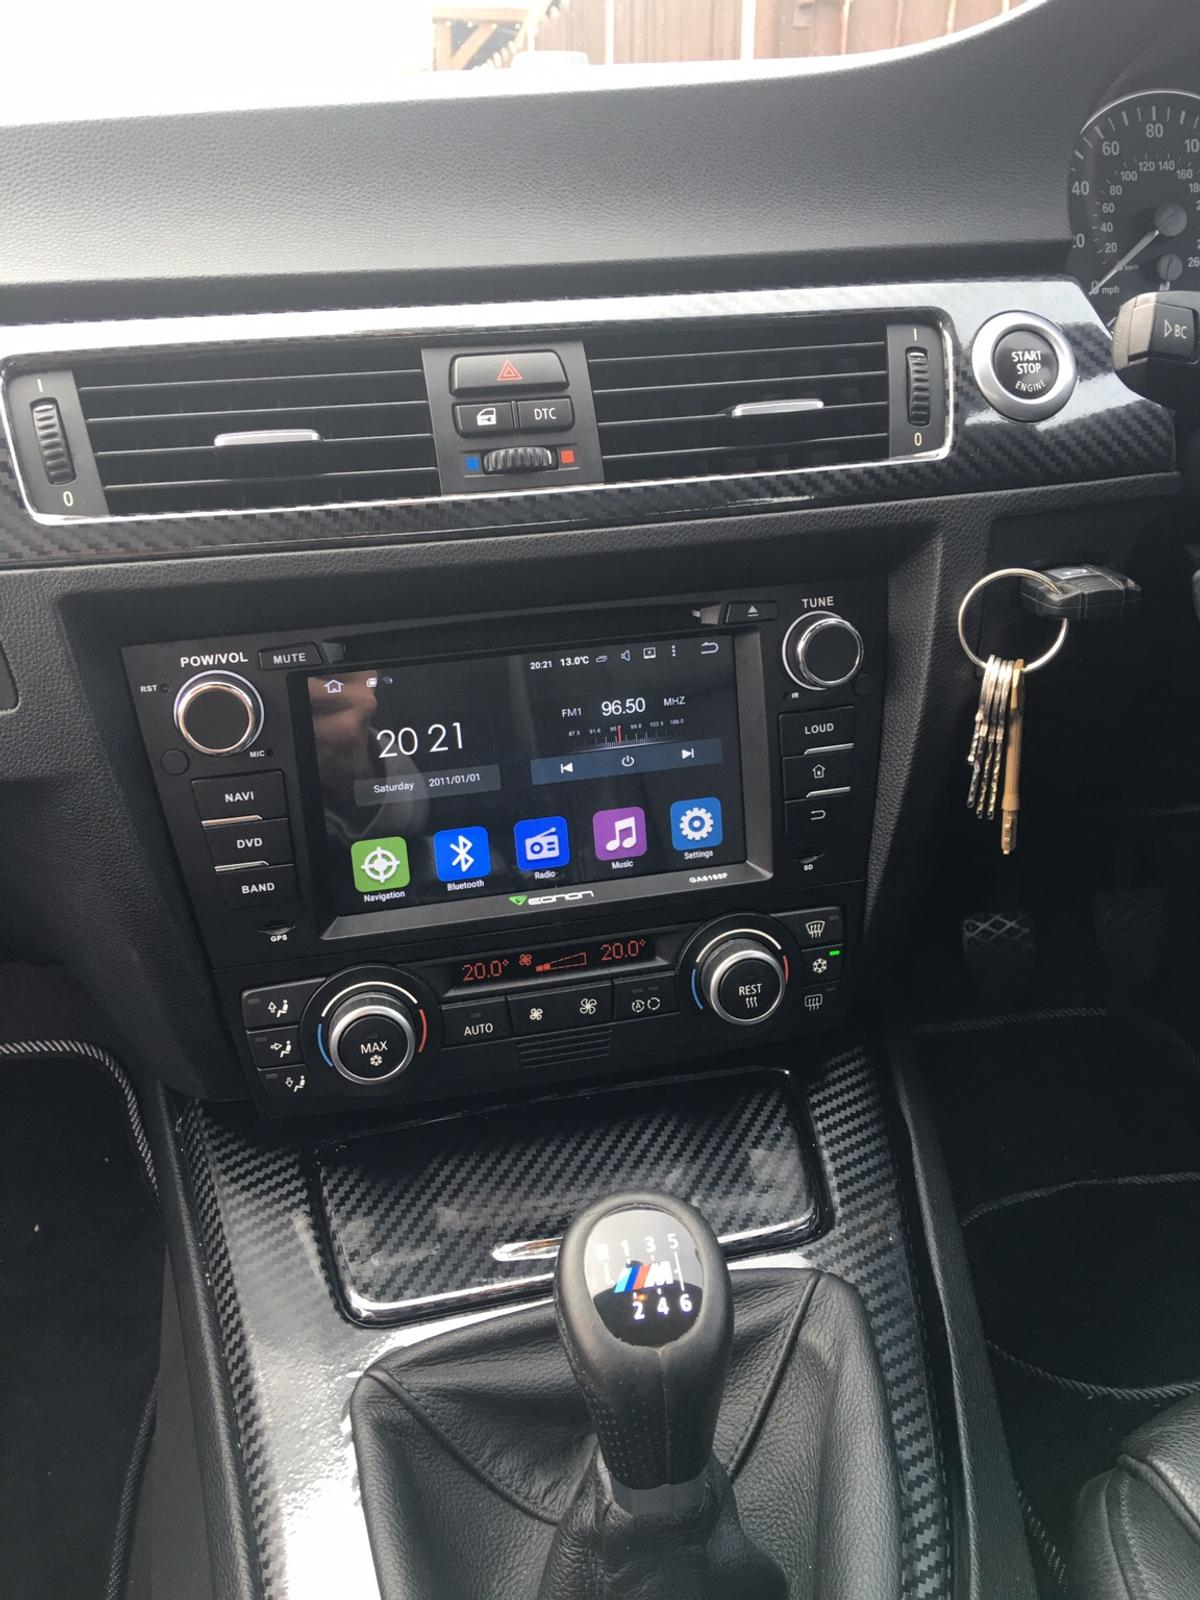 """Eonon BMW E90 Android 7"""" Stereo GA6165F in FY2 Bispham for"""